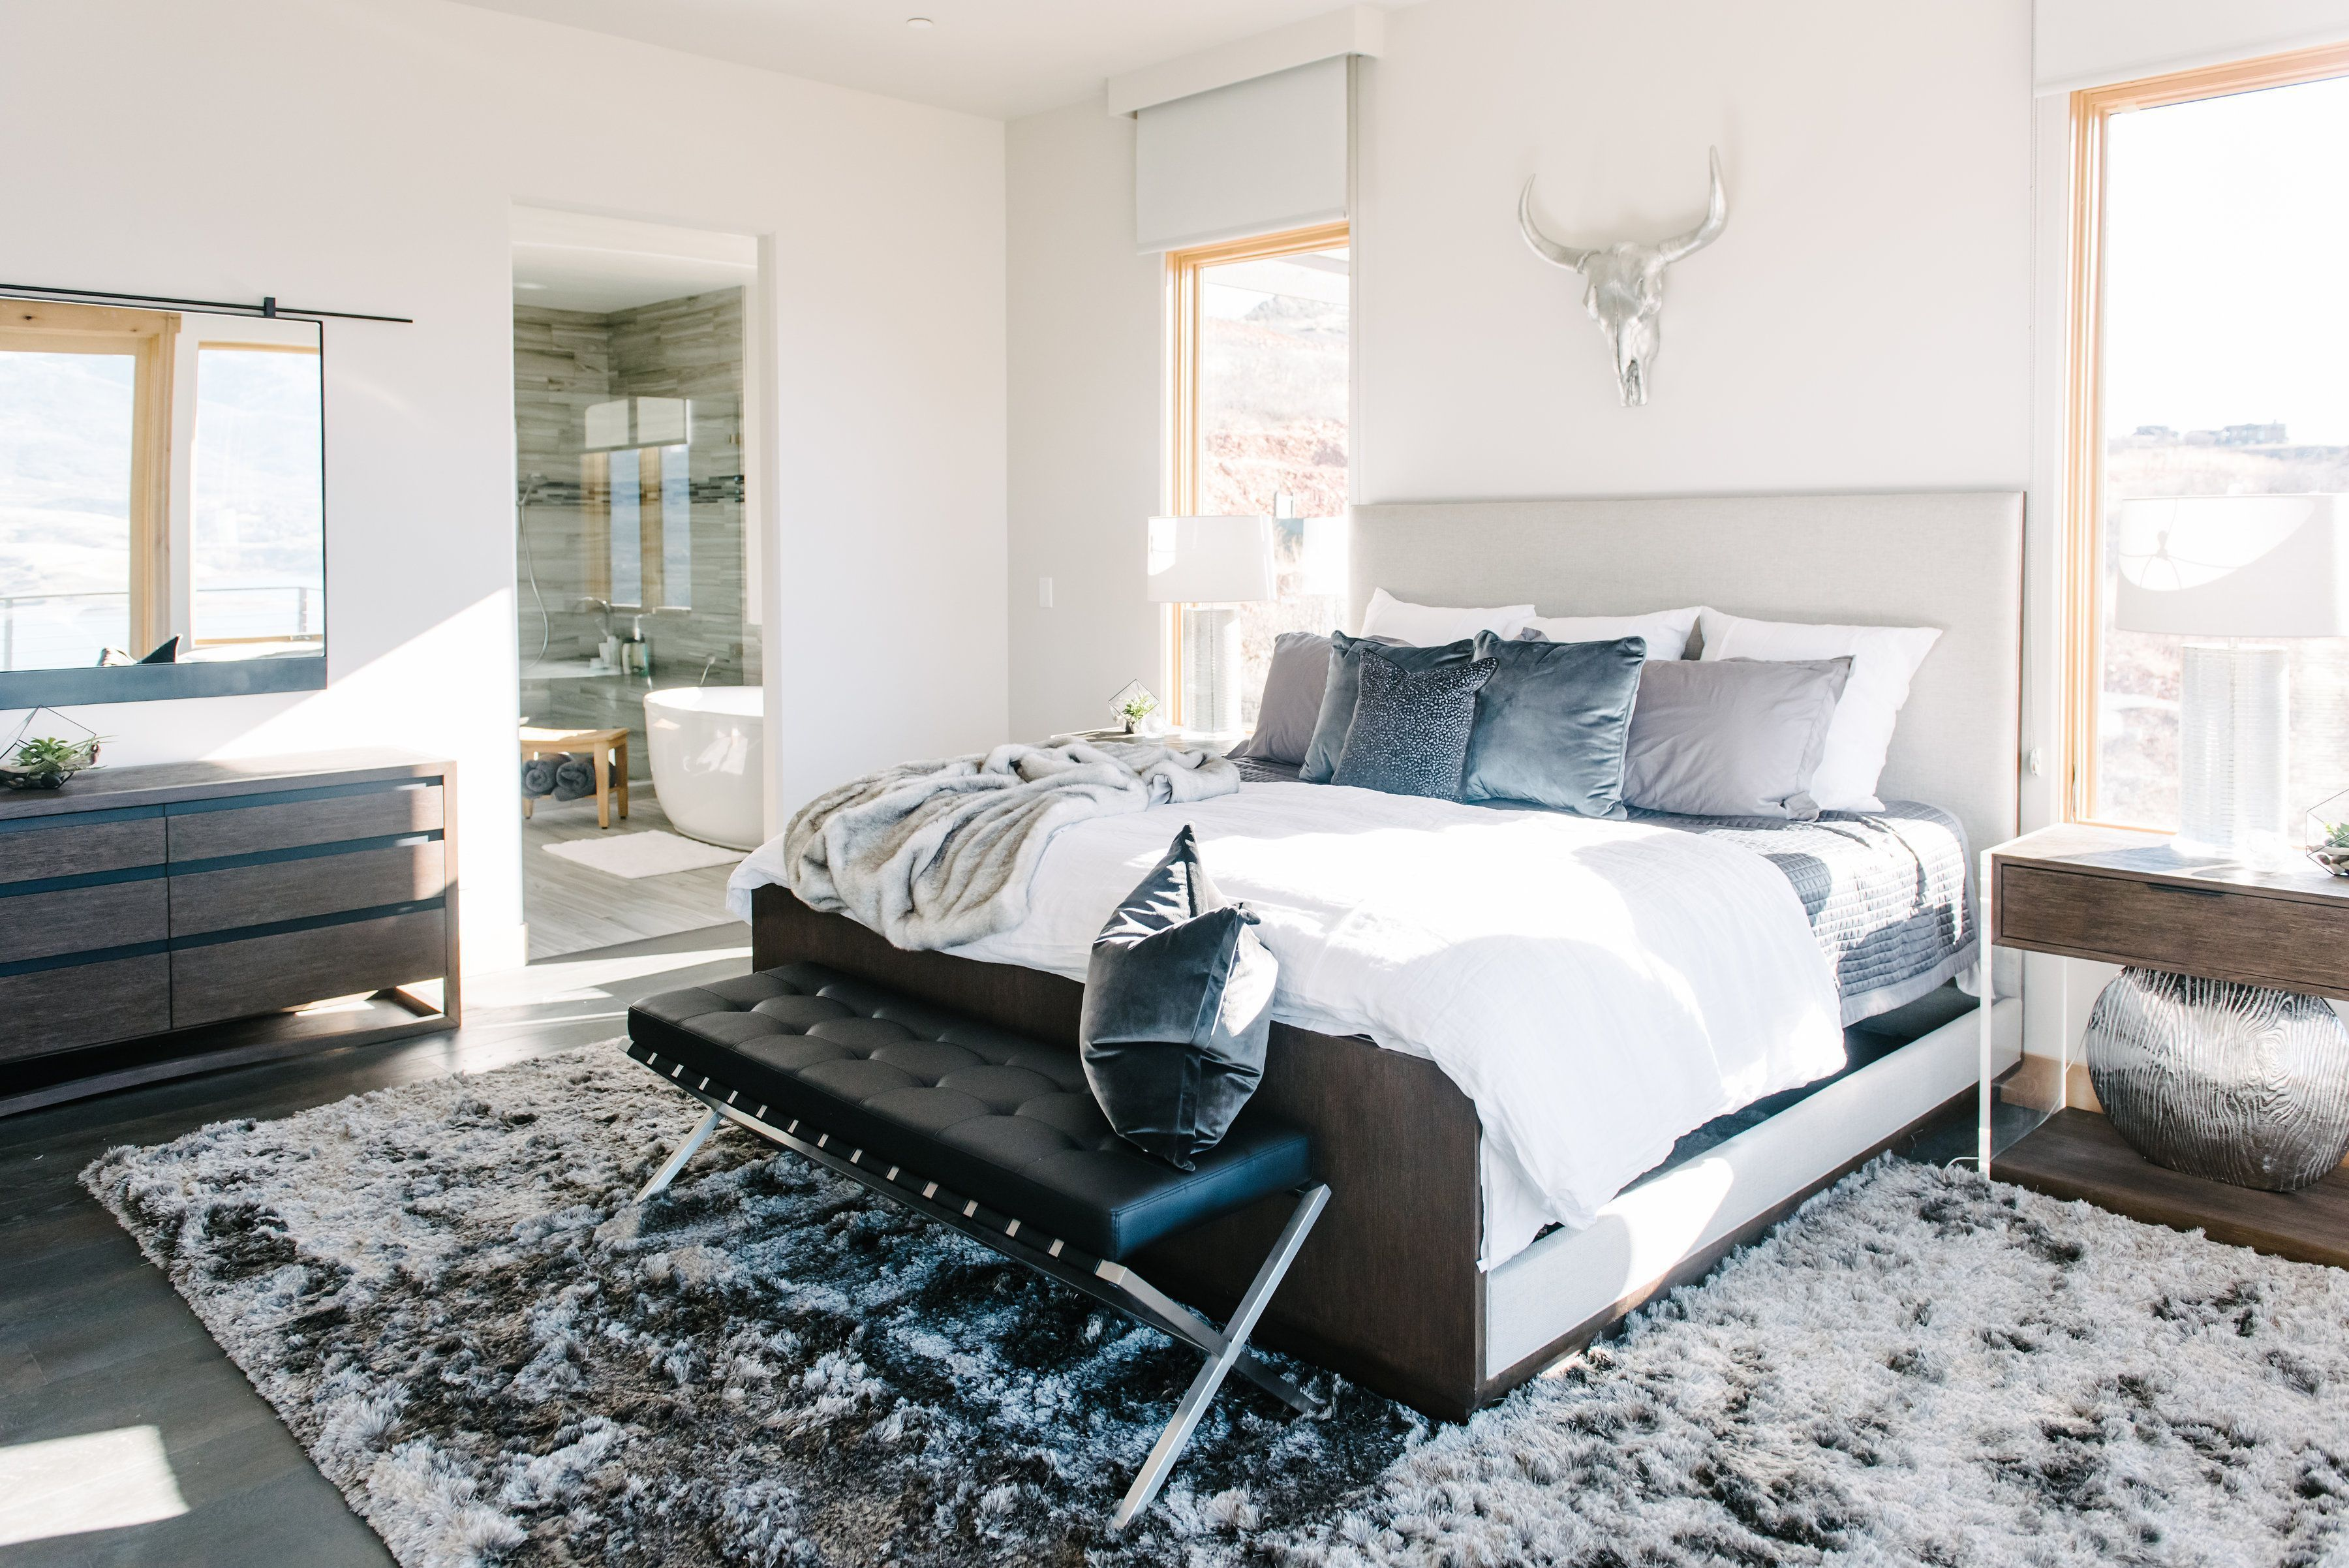 Master Bedroom Master Bedroom Ideas Interior Design Neutral Bedroom Bedding Rug Ideas Rug Placeme Bedroom Rug Placement Bedroom Design Modern Bedroom Rug